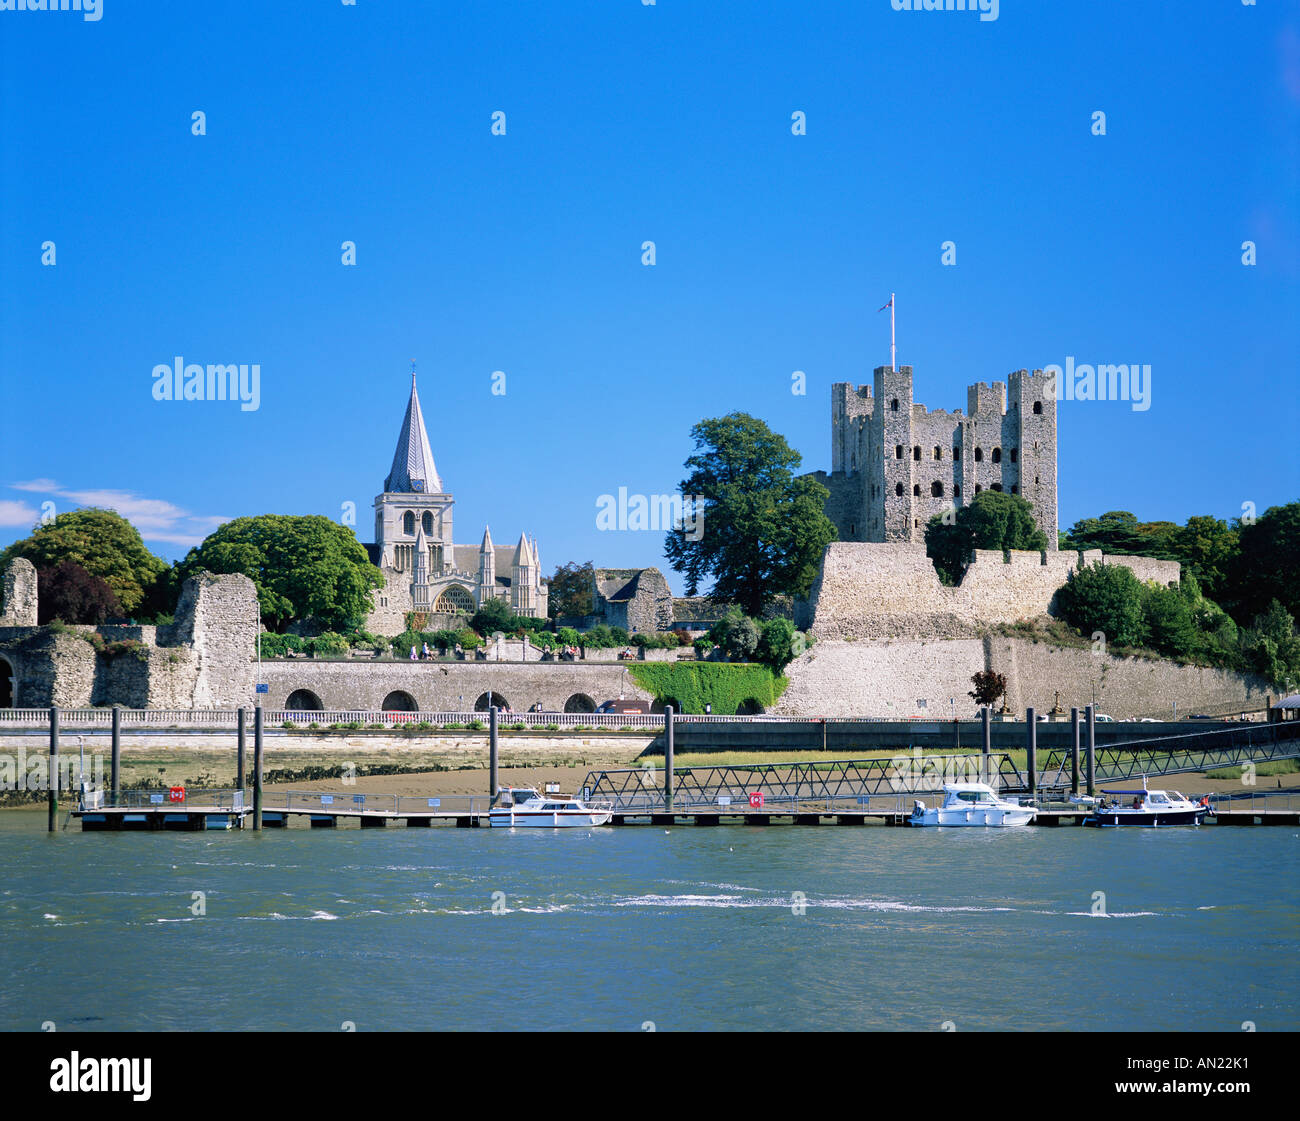 Abandoned Places Medway: River Medway Rochester Stock Photos & River Medway